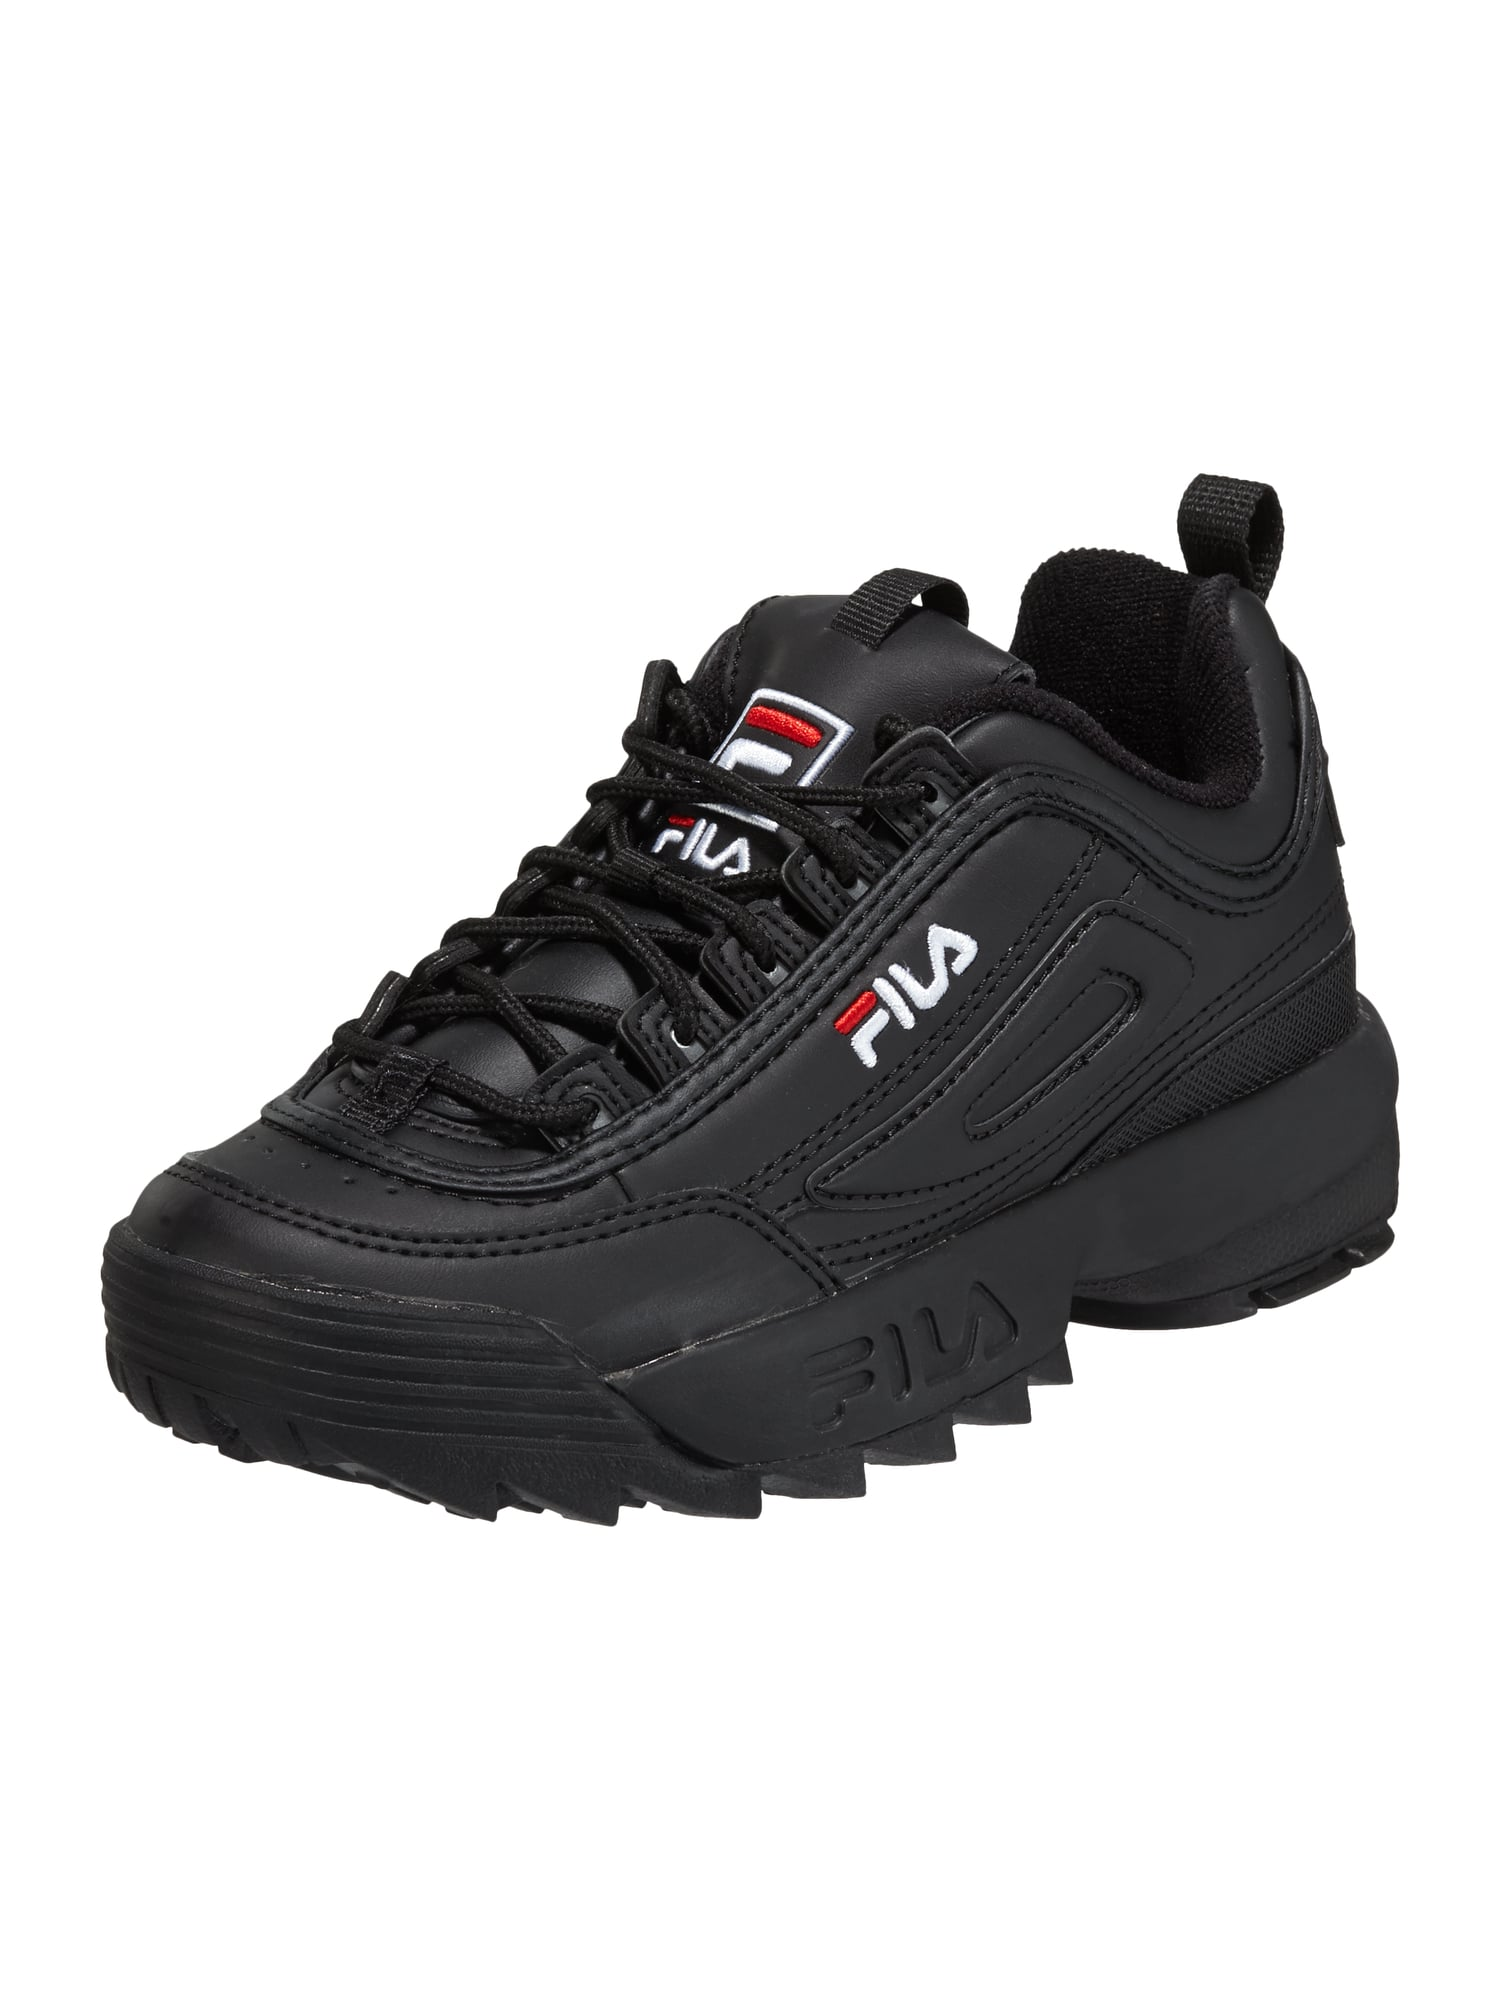 fila sneaker 39 disruptor 39 mit plateausohle in grau schwarz online kaufen 9672485 p c online. Black Bedroom Furniture Sets. Home Design Ideas